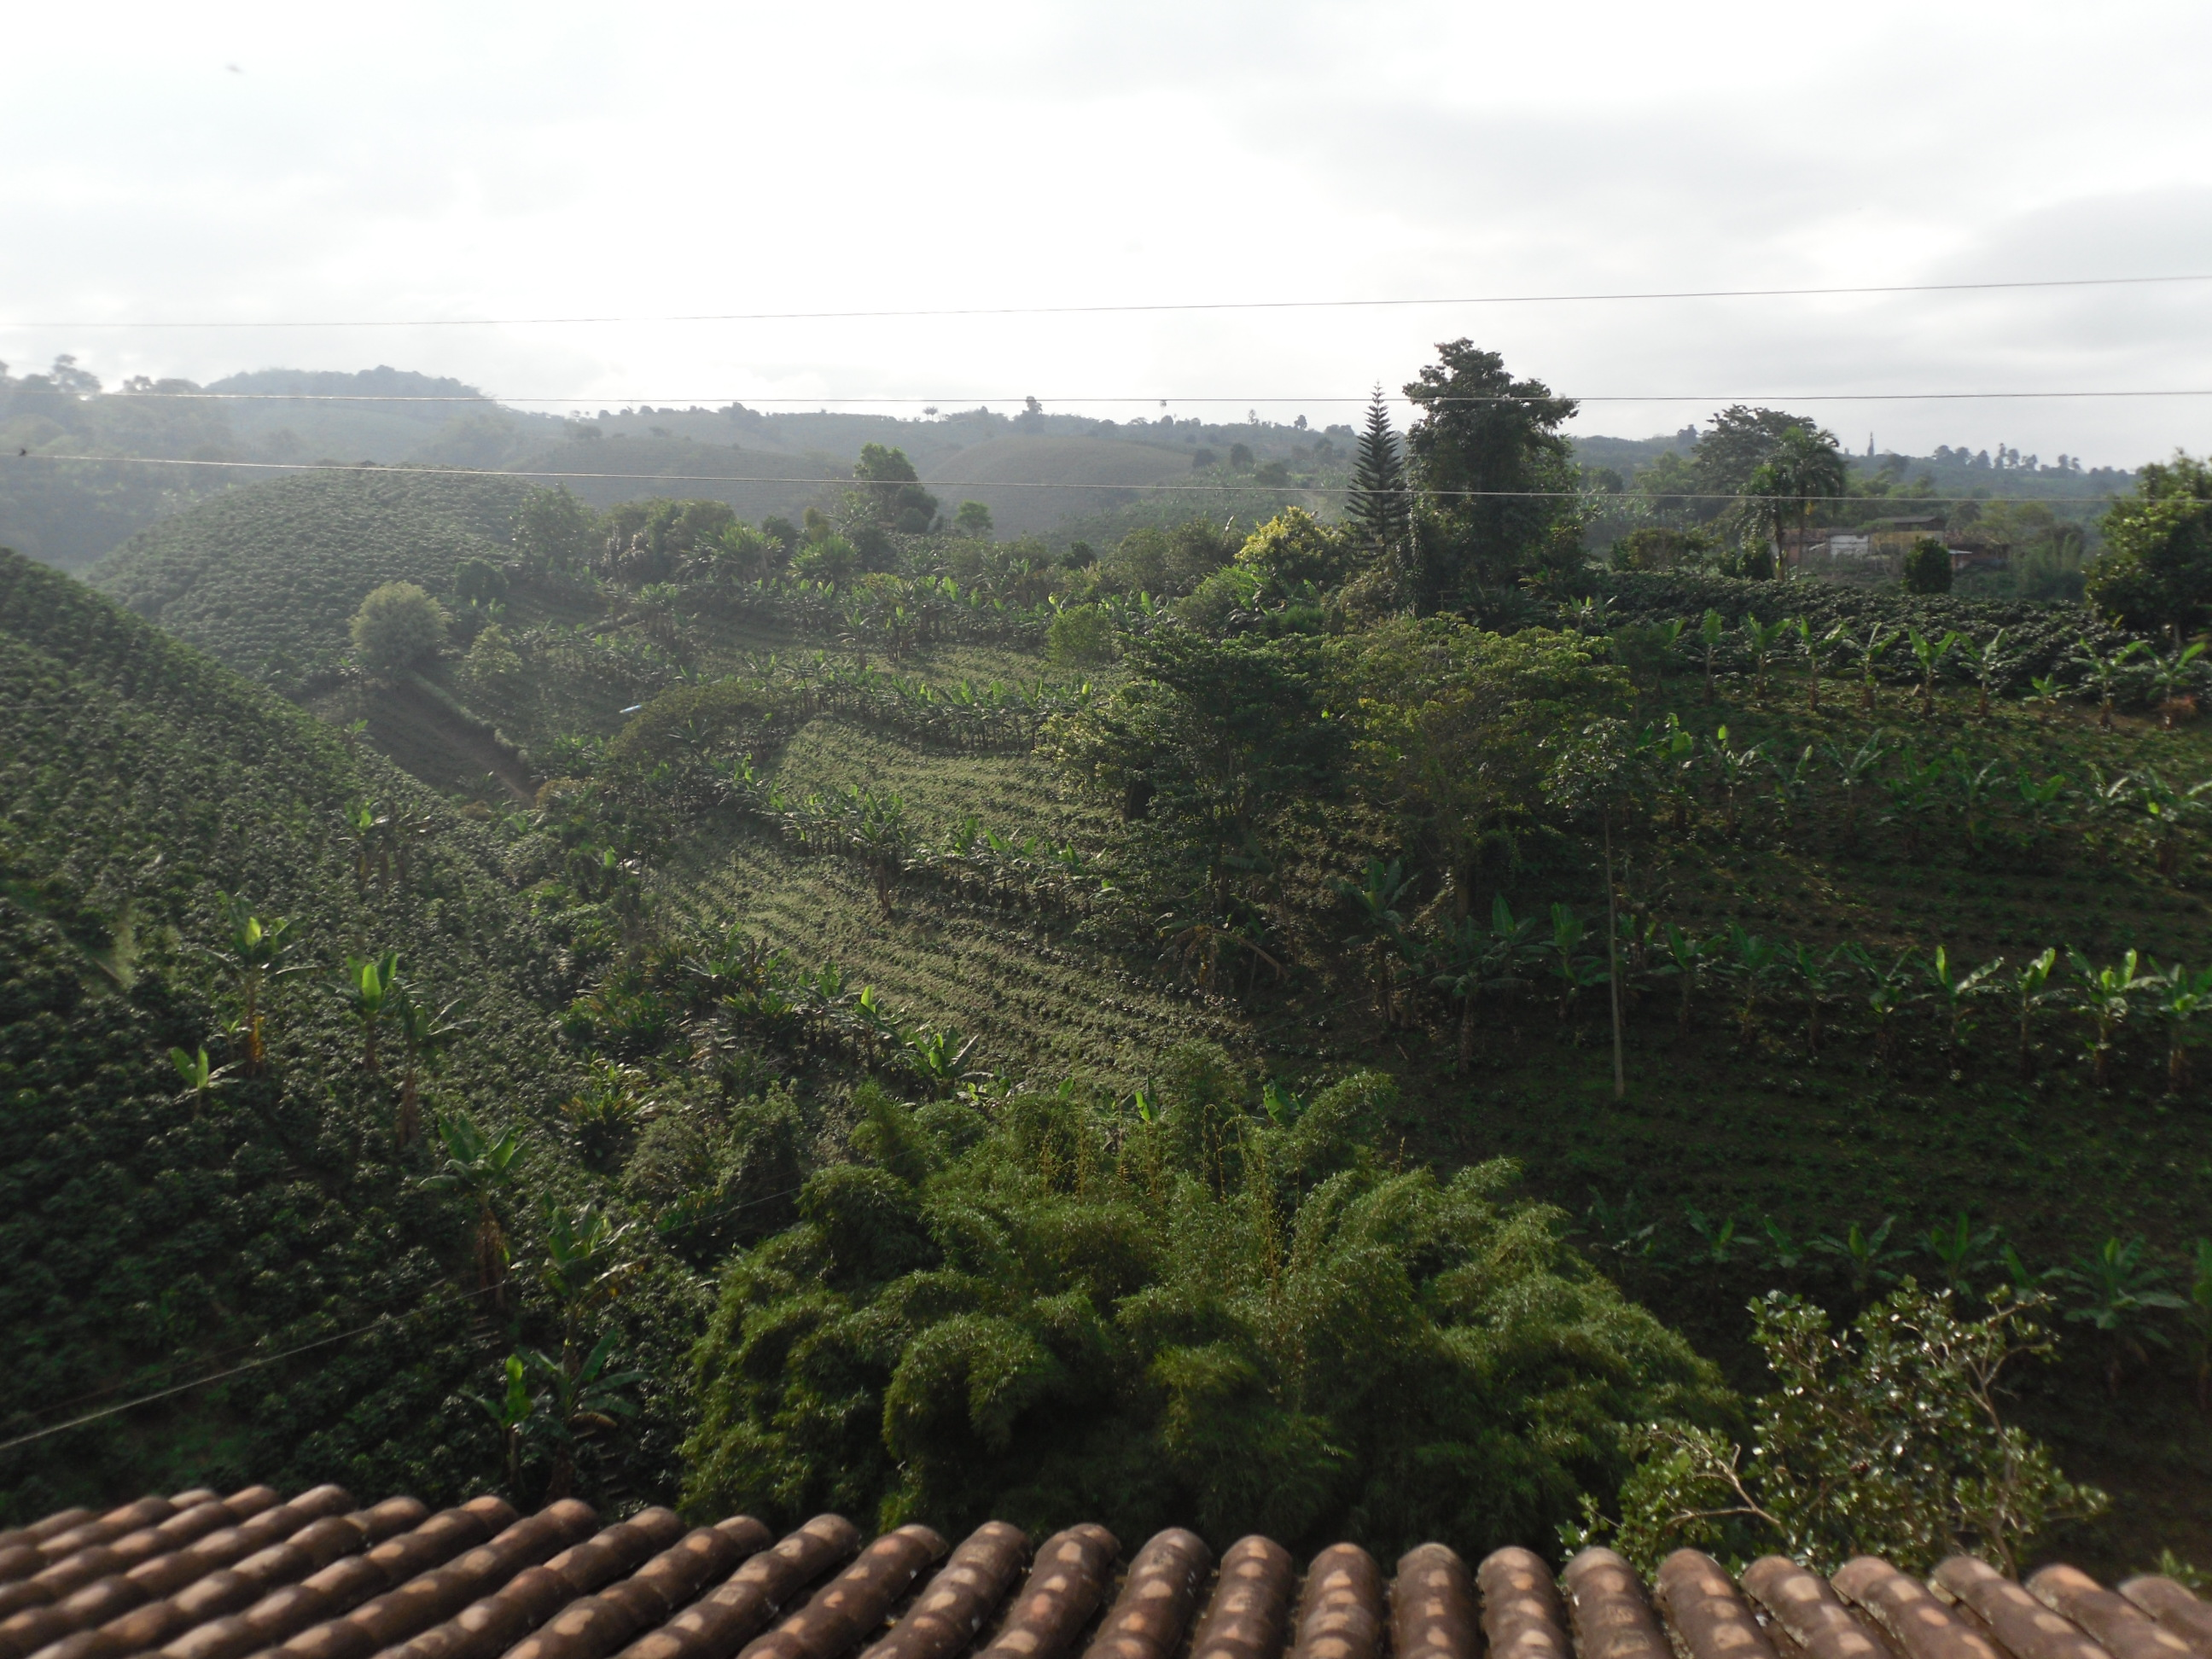 Colombia's famous Coffee Country